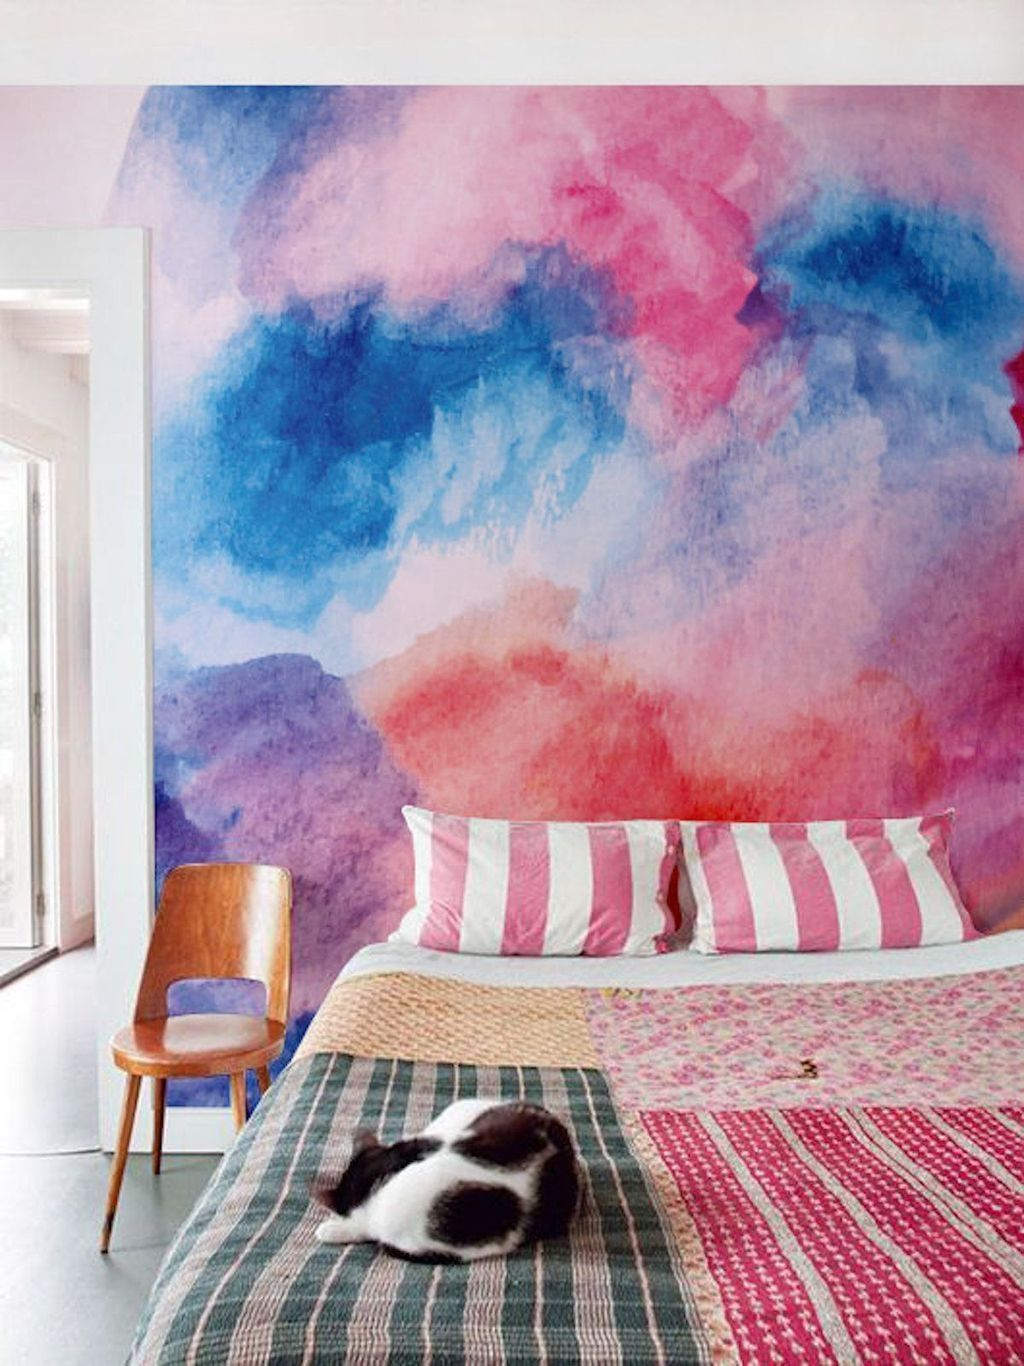 49 Awesome Bedroom Wall Decals Design Ideas Wall Murals Bedroom